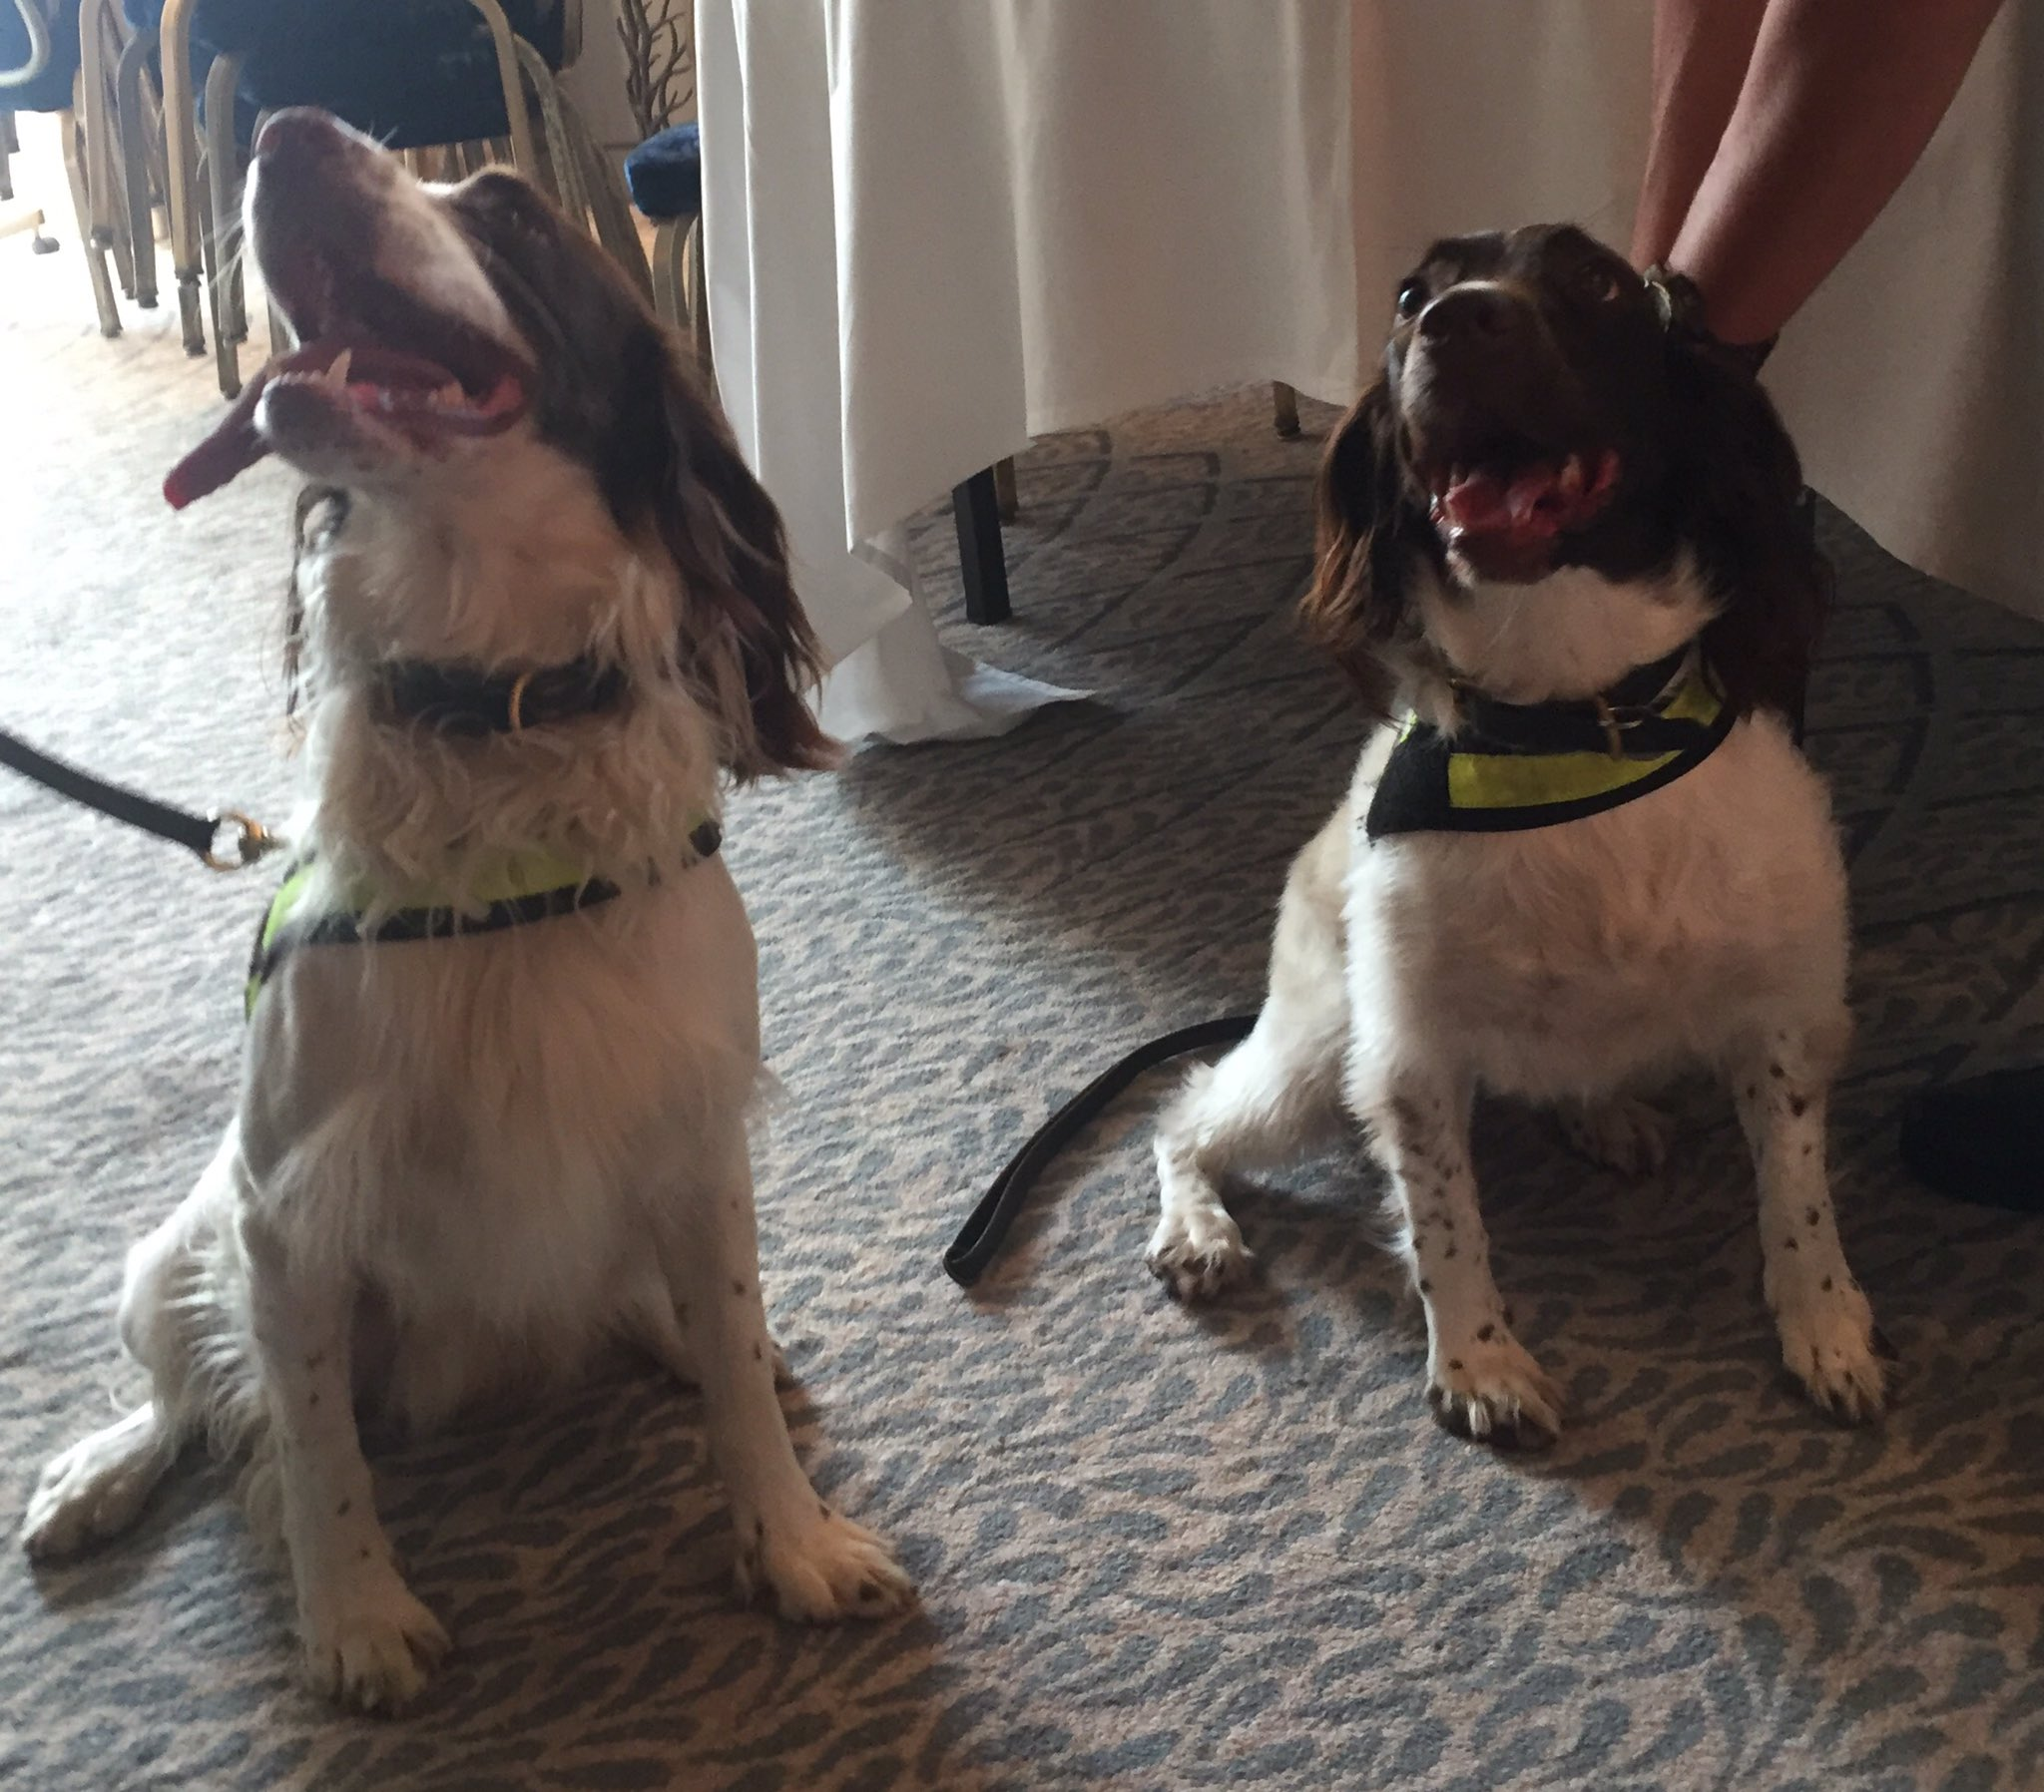 Excitable @metpoliceuk dogs Ellie & Rocco are helping ensure everything is safe ahead of the #PoliceBravery Awards https://t.co/TNRygNncf3